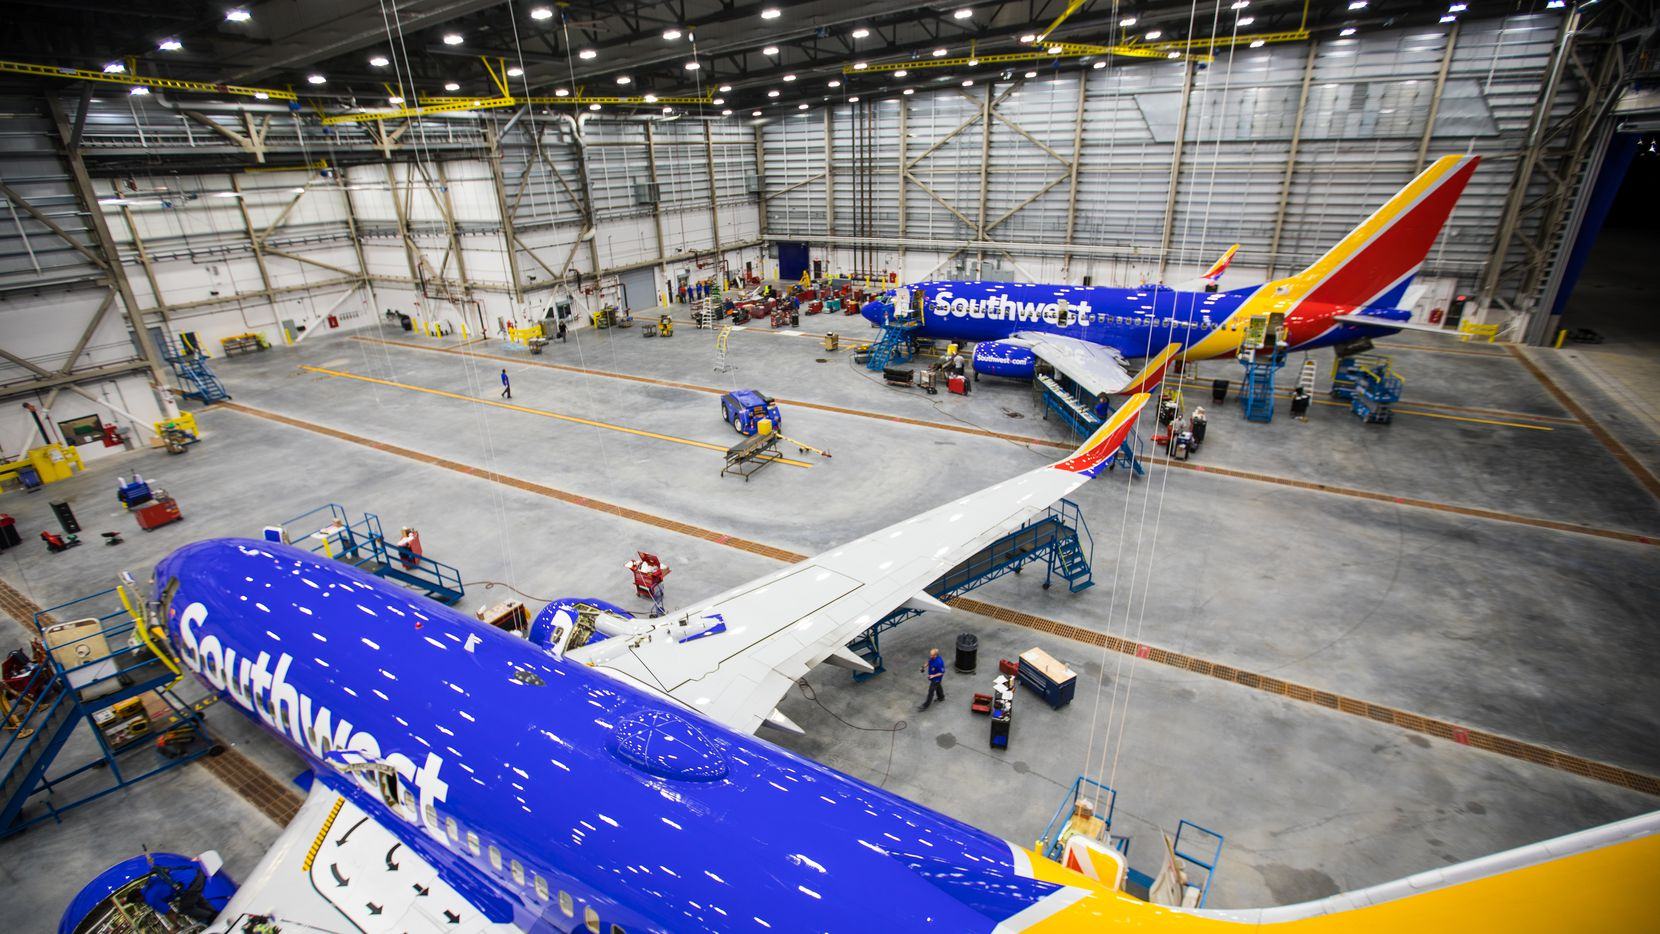 Southwest Airlines' new maintenance hangar at Houston Hobby Airport opened Wednesday.